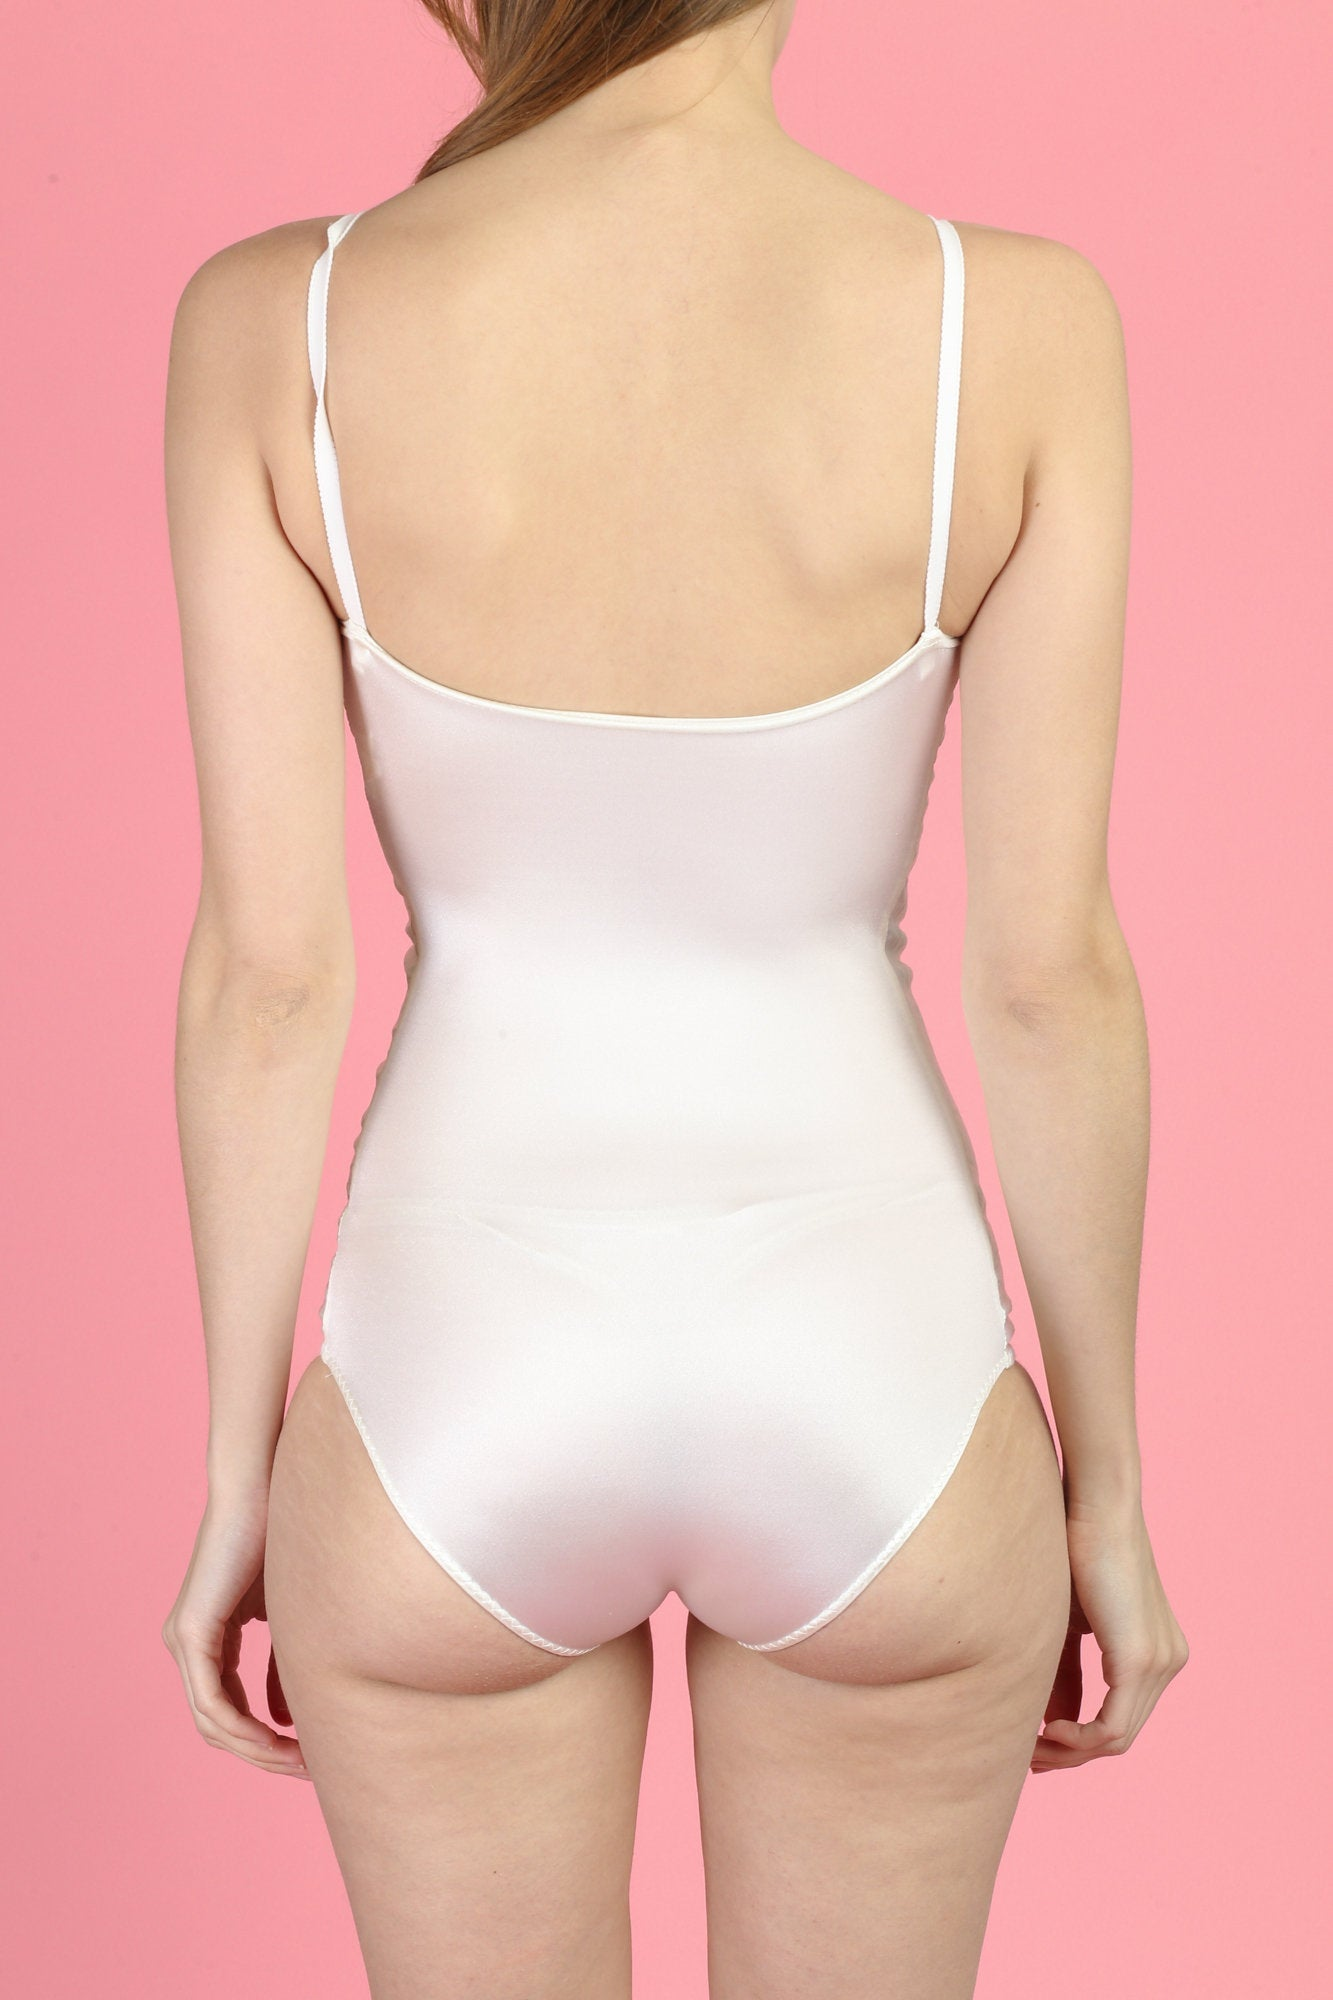 Vintage Satin Leotard Bodysuit - Extra Small